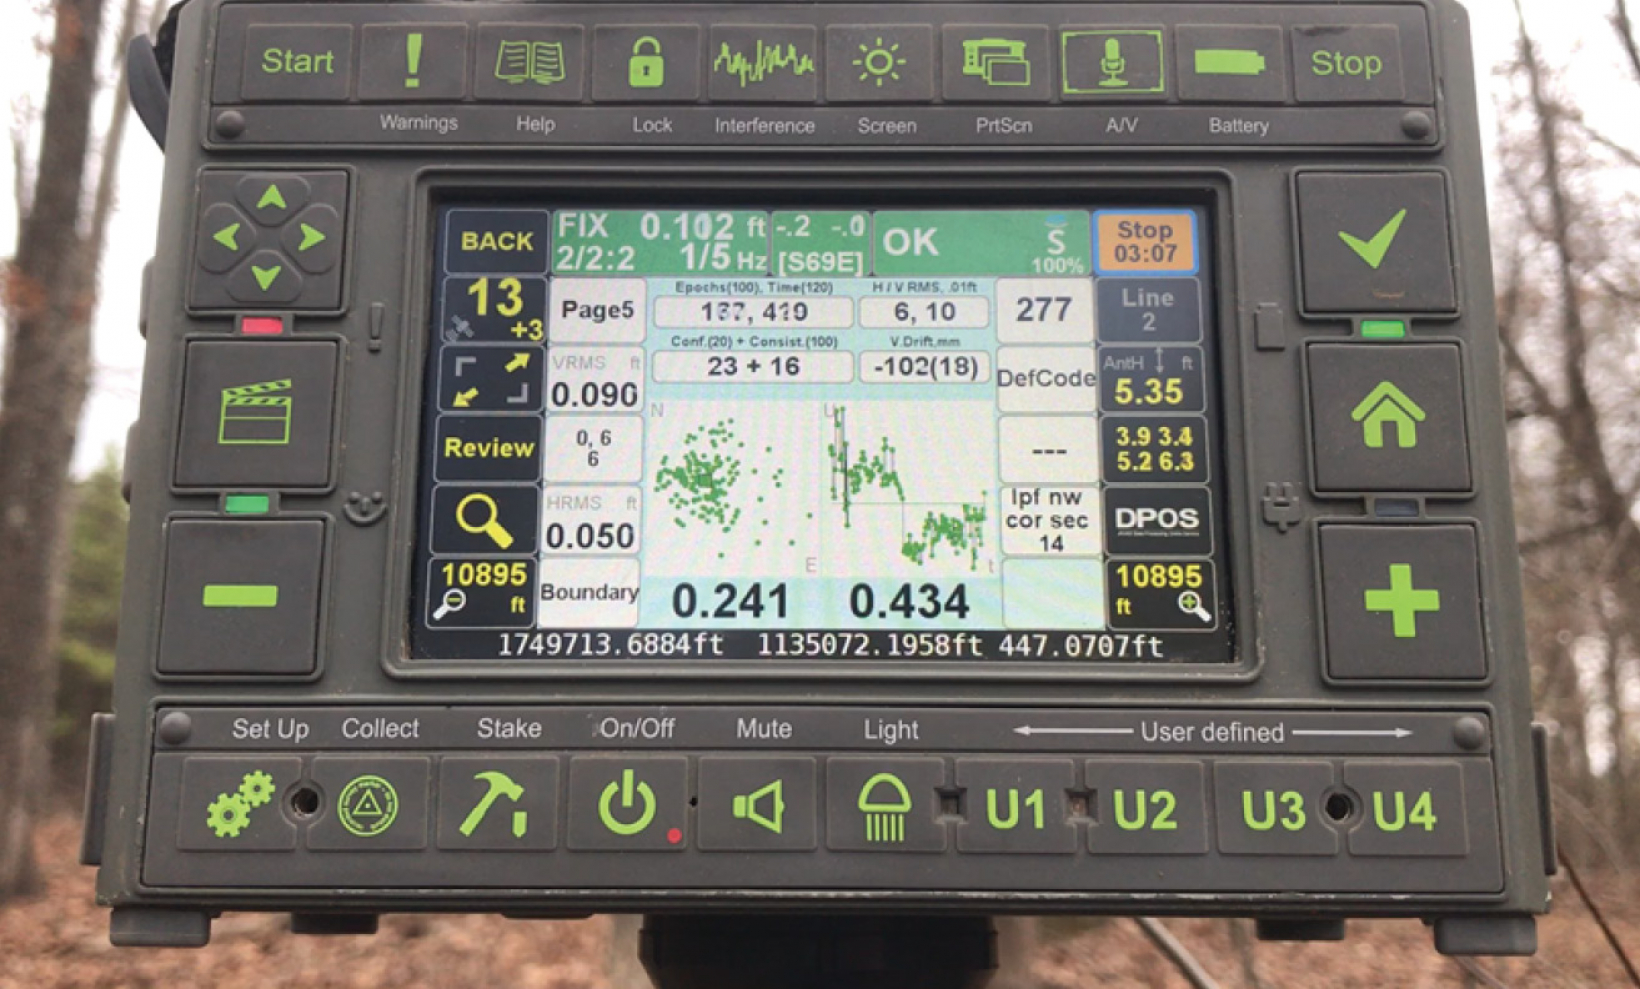 Triumph-LS Plus obtains stable excellent RTK result in challenging environment using all Galileo signals